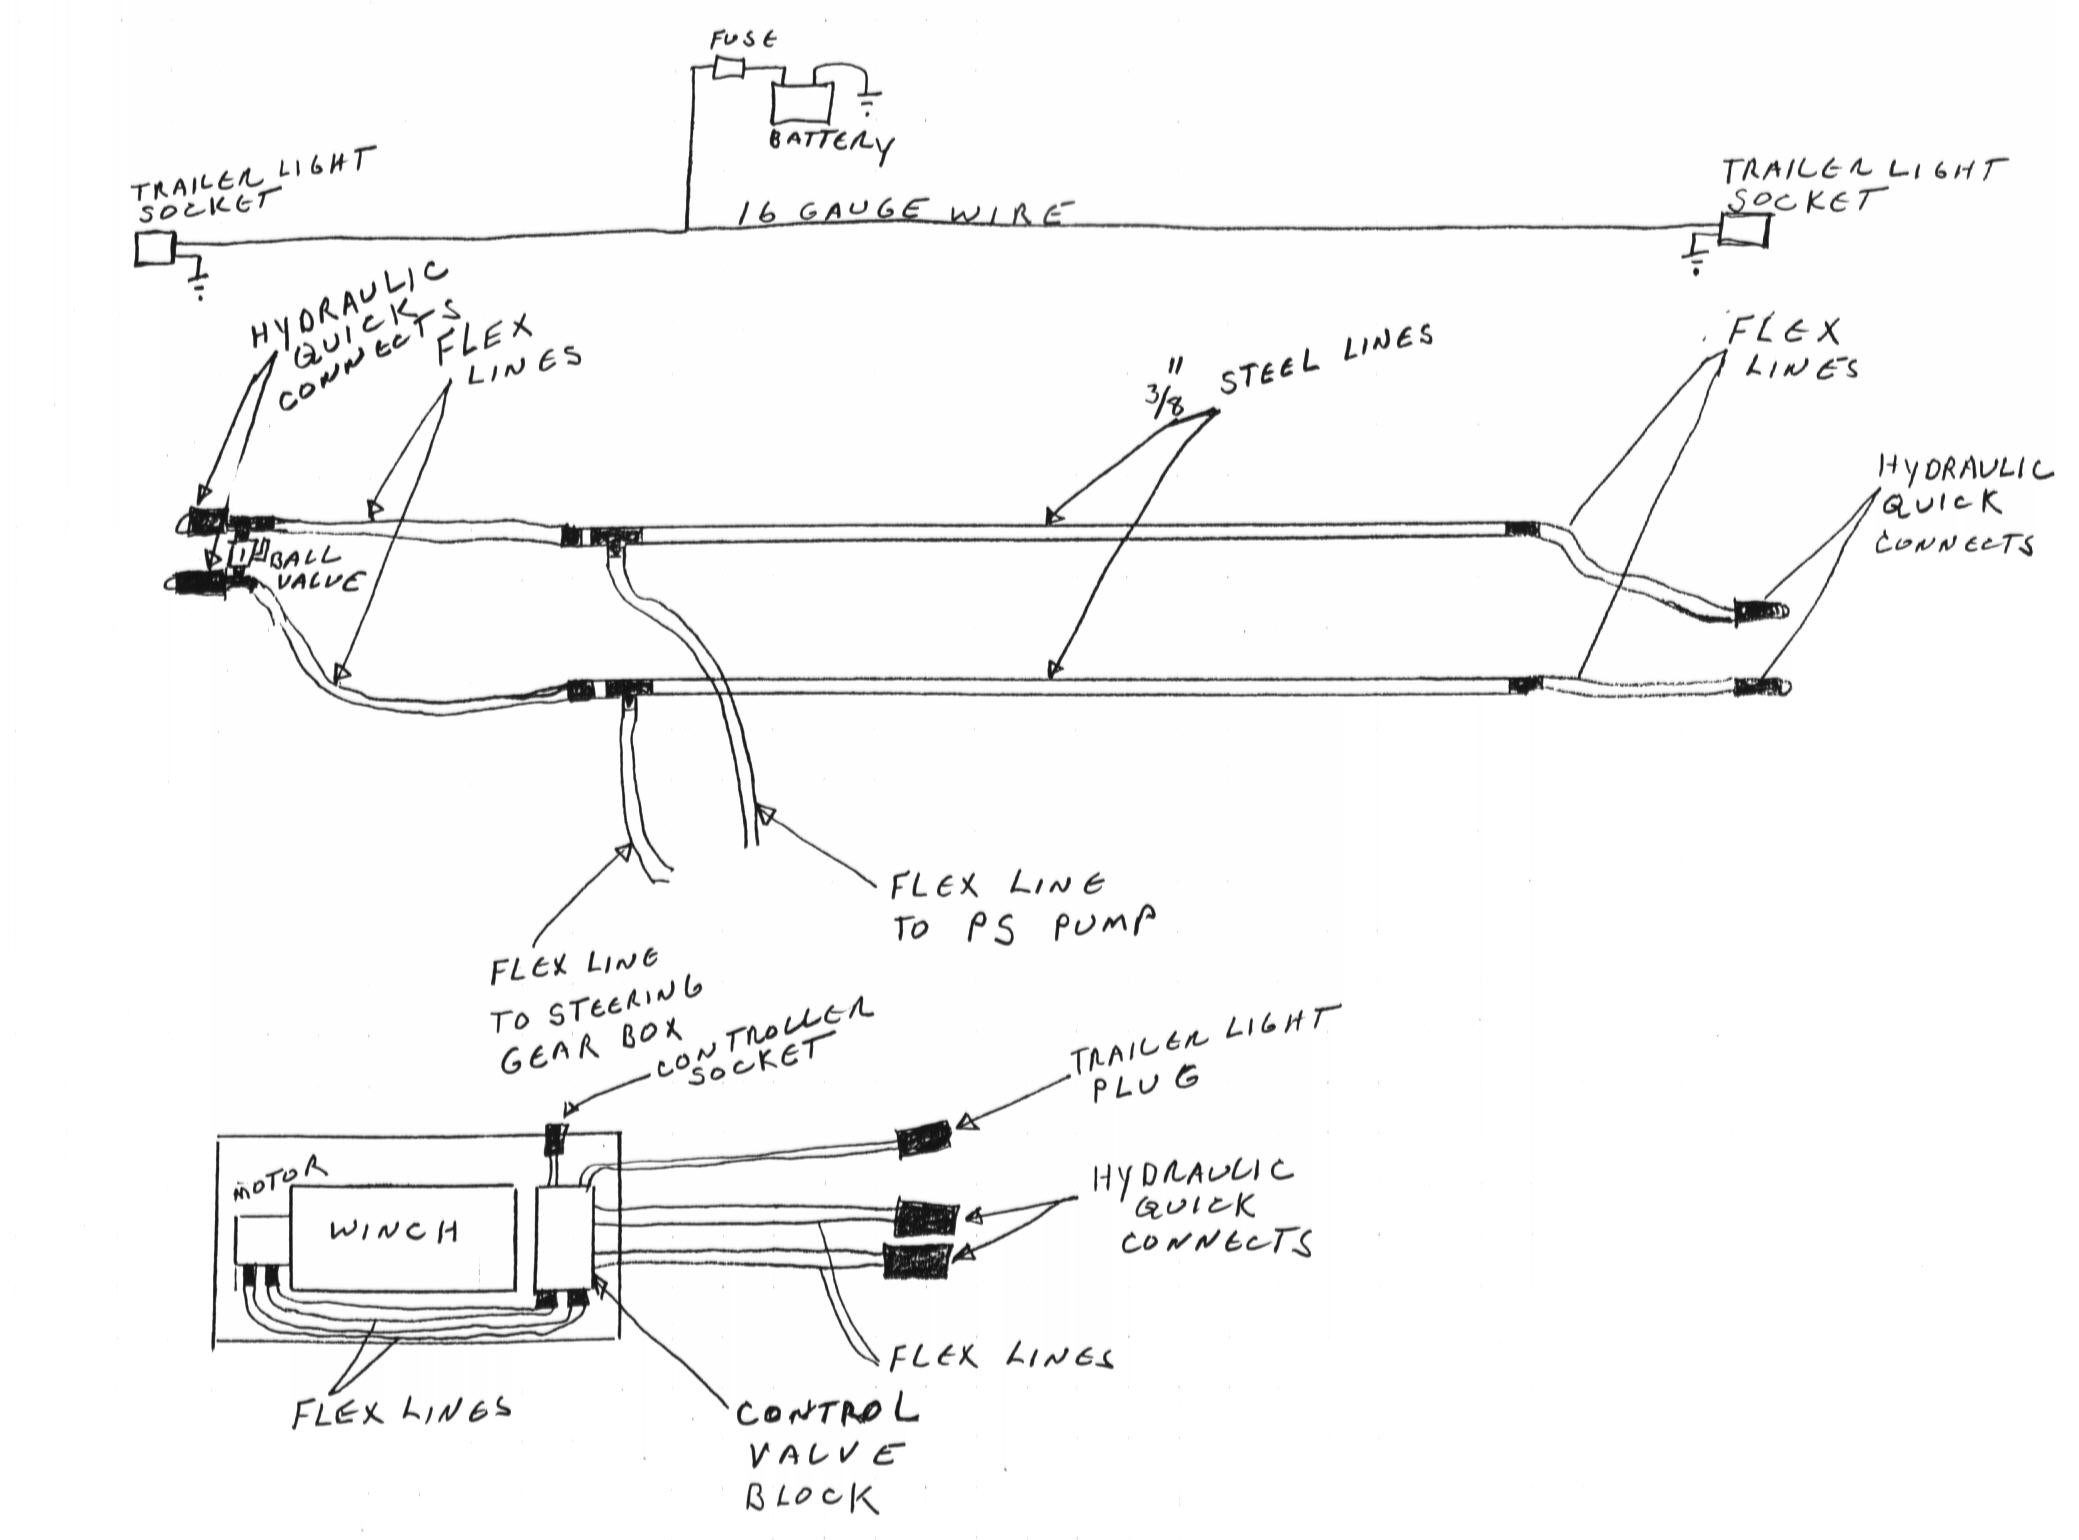 Badlands Winch Wiring Diagram from wholefoodsonabudget.com